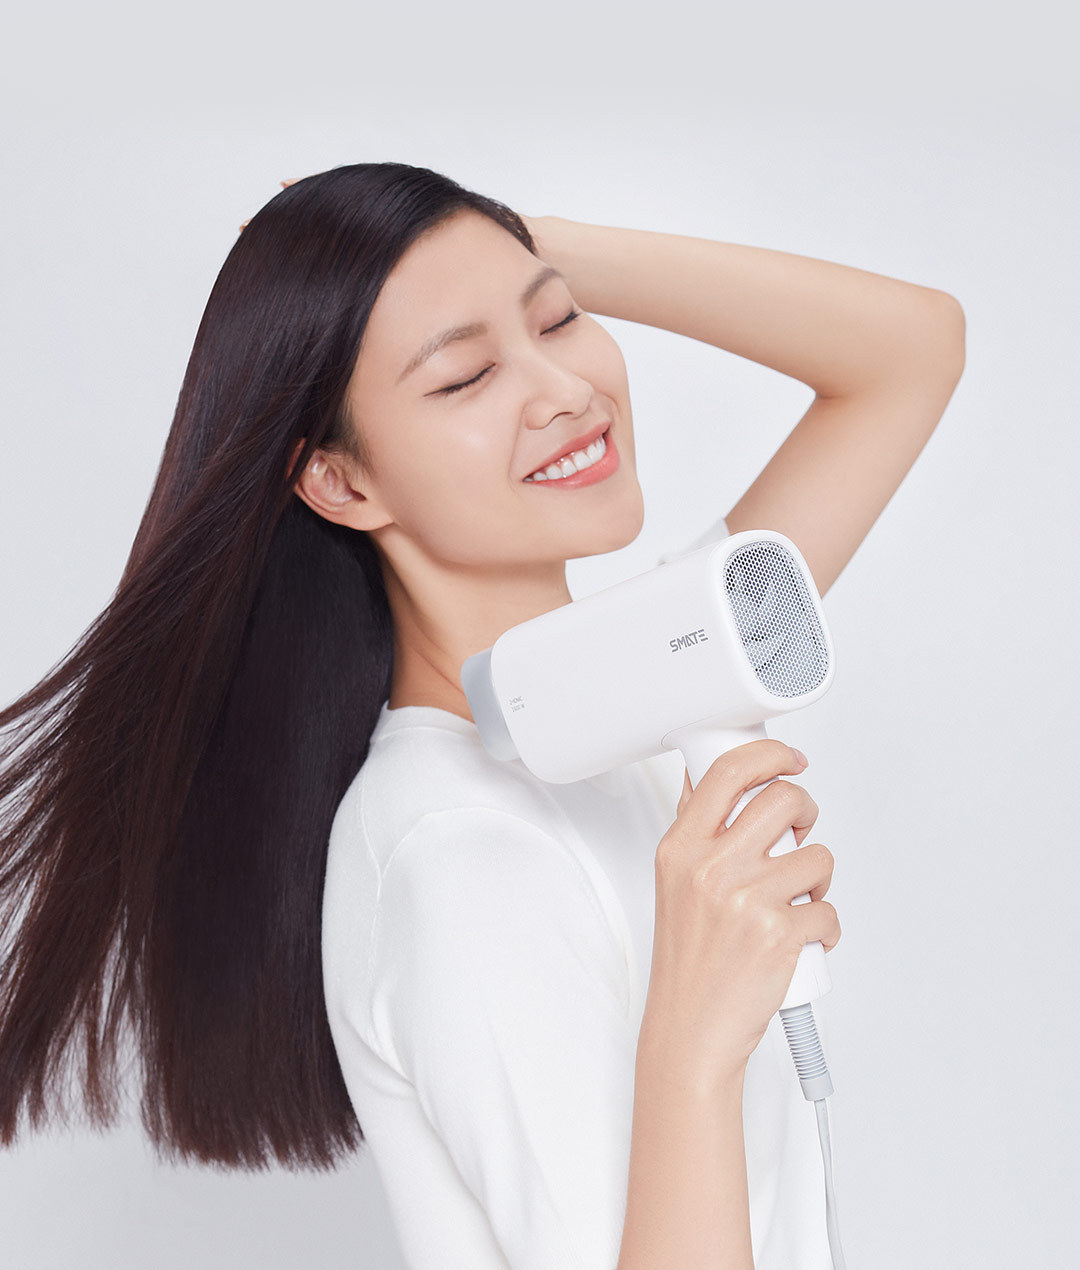 xiaomi-SMATE-Hair-dryer-White-SH-A161